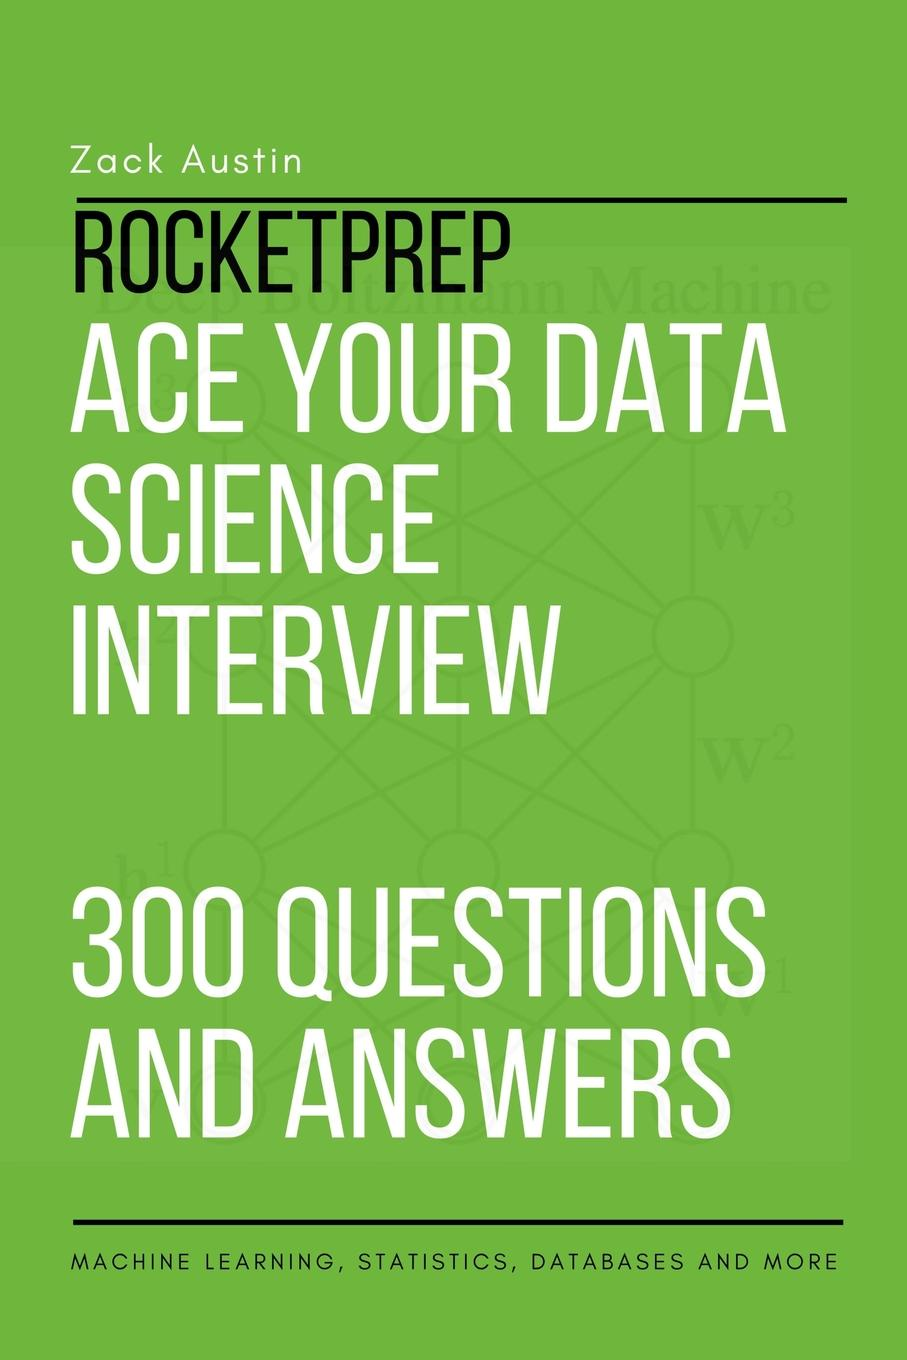 Zack Austin RocketPrep Ace Your Data Science Interview 300 Practice Questions and Answers. Machine Learning, Statistics, Databases and More how2become cabin crew interview questions and answers sample interview questions and answers for the cabin crew interview